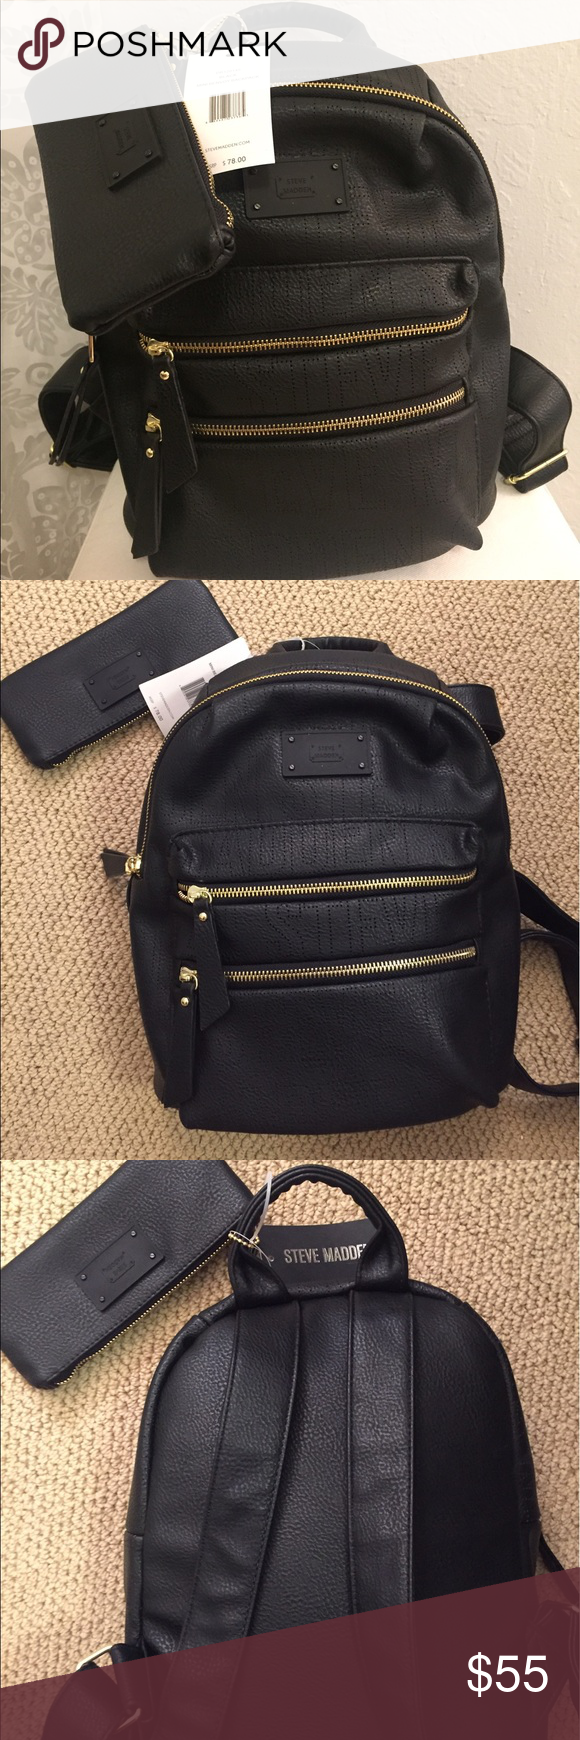 adbdd0966f91 Steve Madden Black and Gold Backpack Black and gold never been used brand  new with tags. Amazing quality